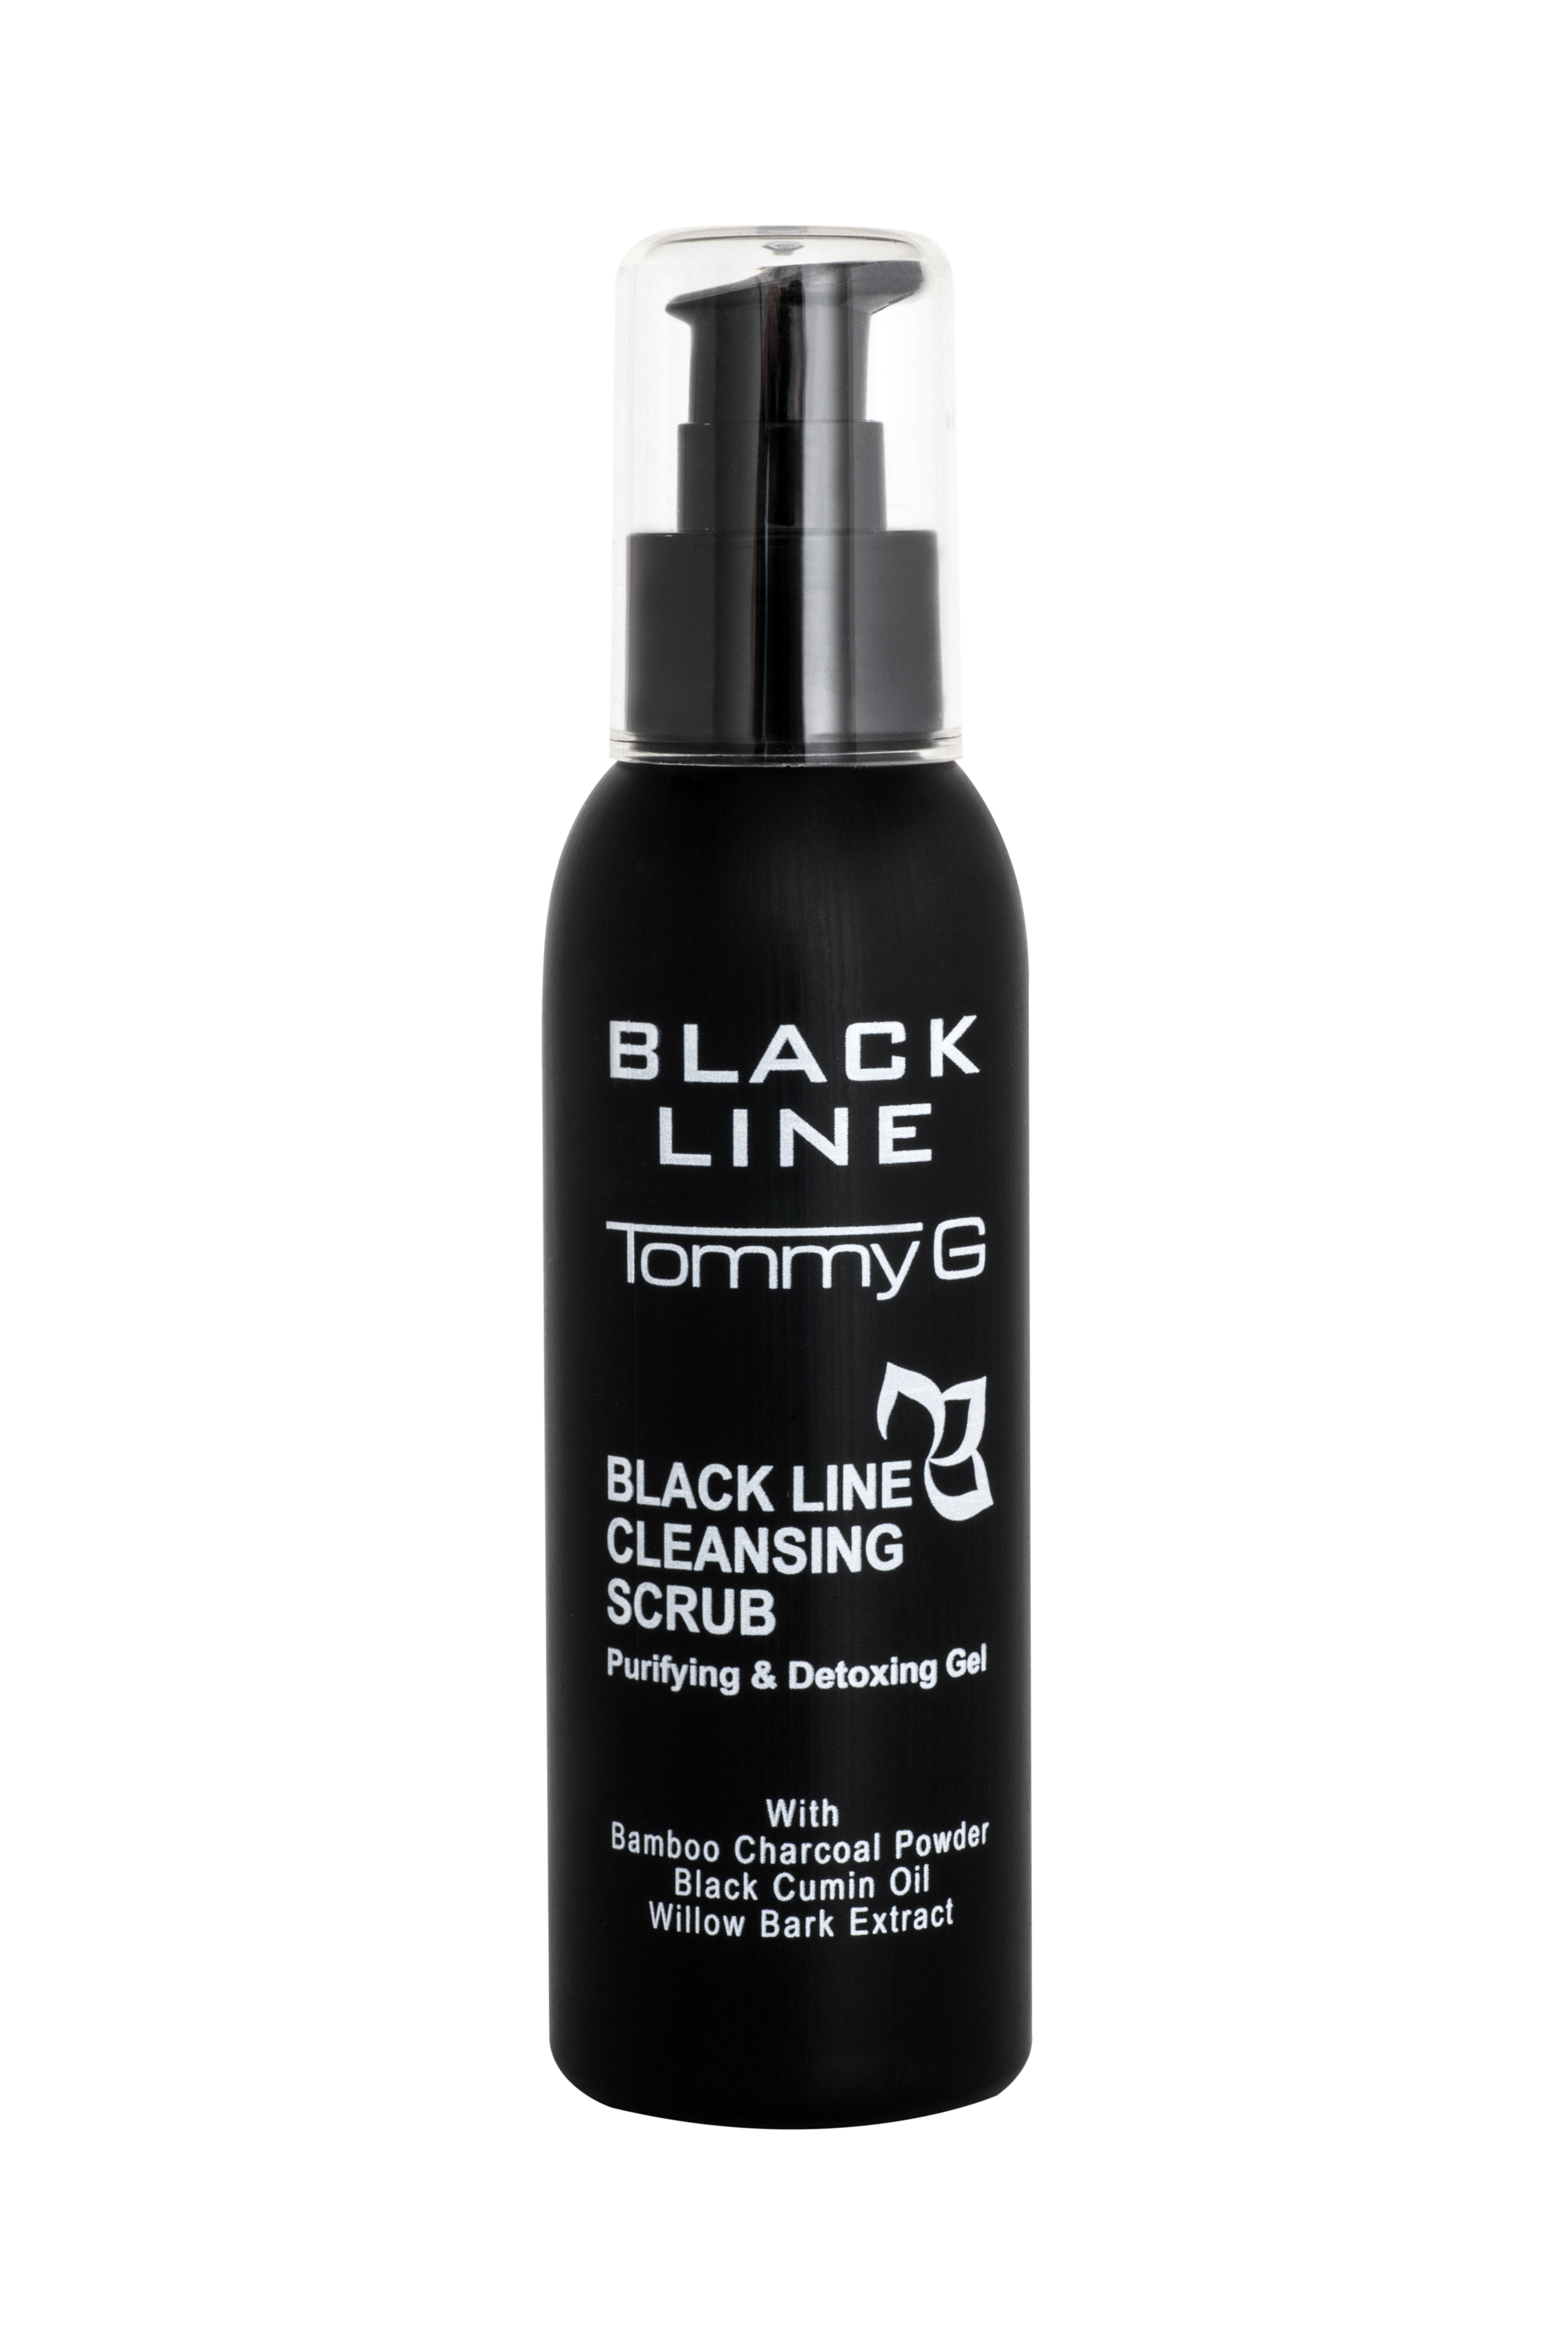 Black Line Cleansing Scrub